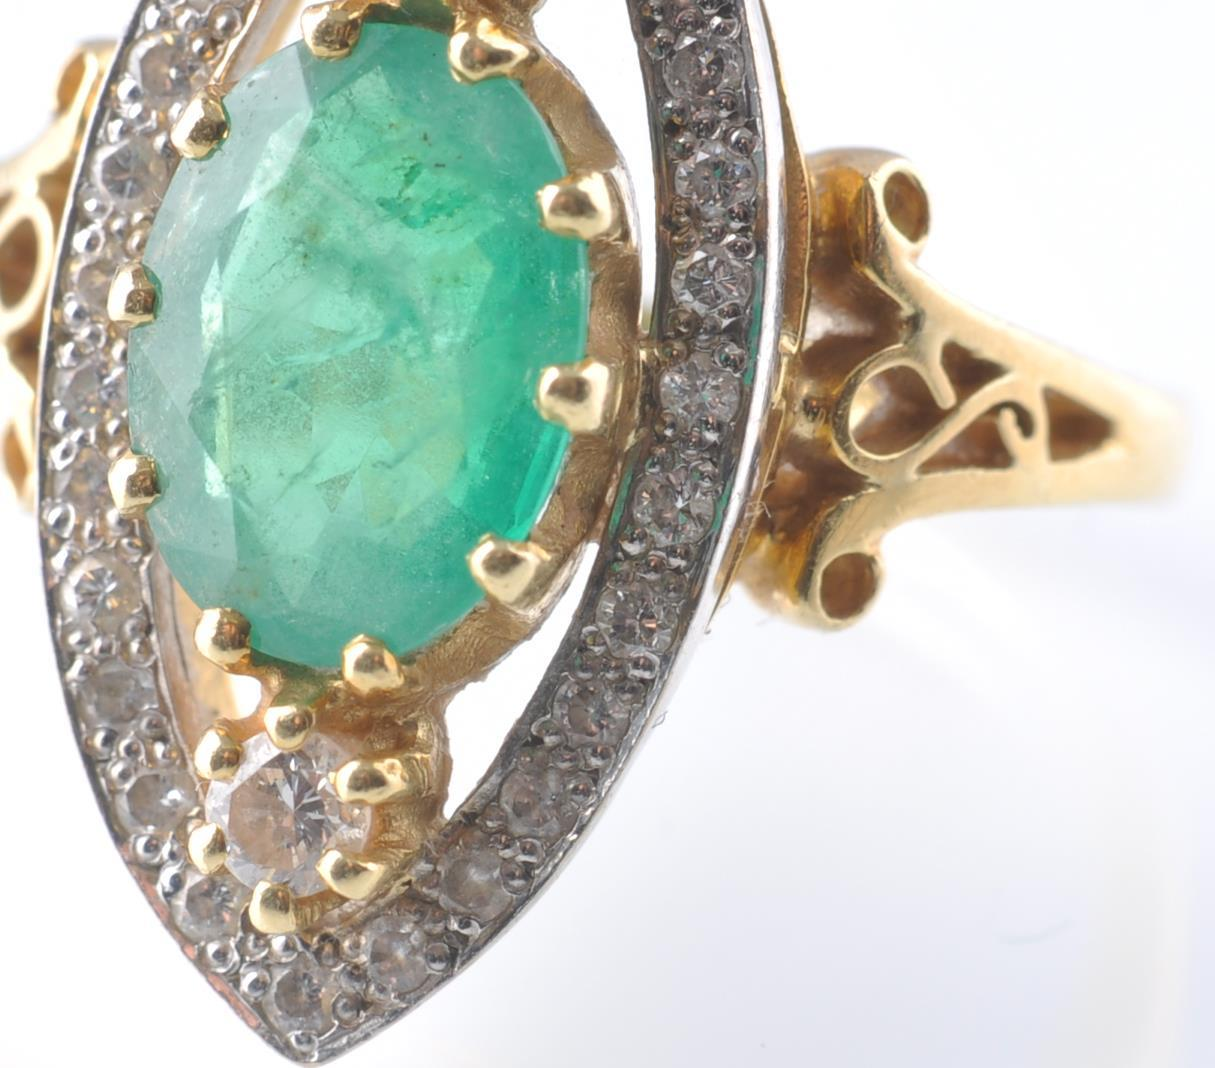 A HALLMARKED 18CT GOD EMERALD AND DIAMOND RING - Image 3 of 11